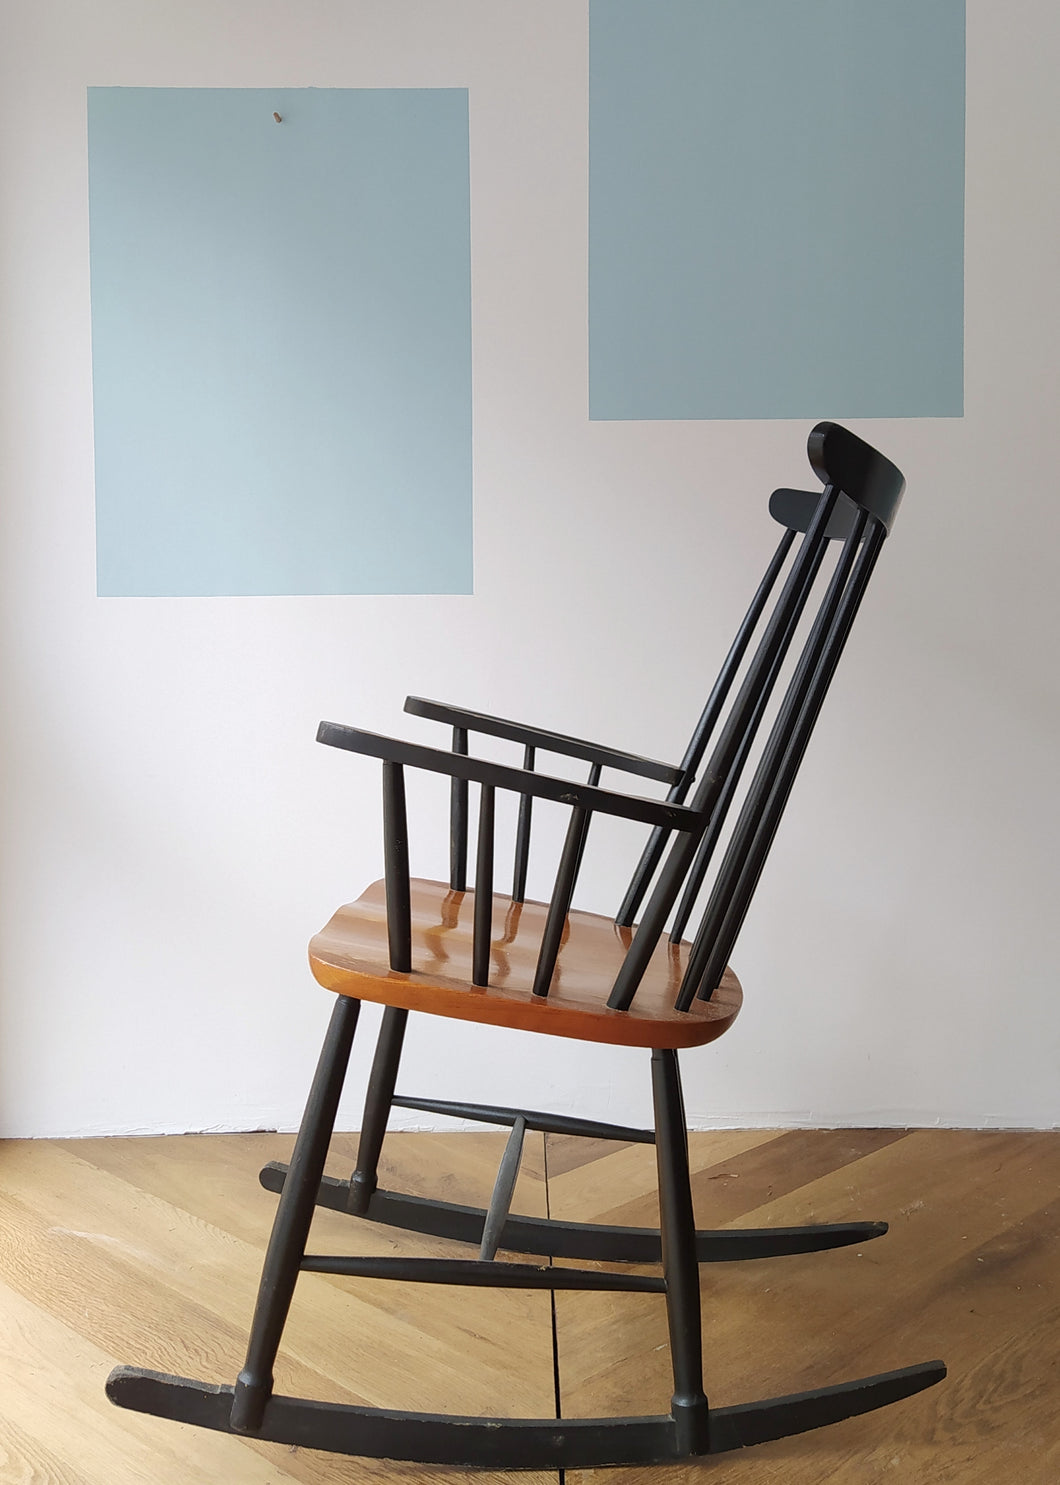 Rocking chair I.Tapiovaara